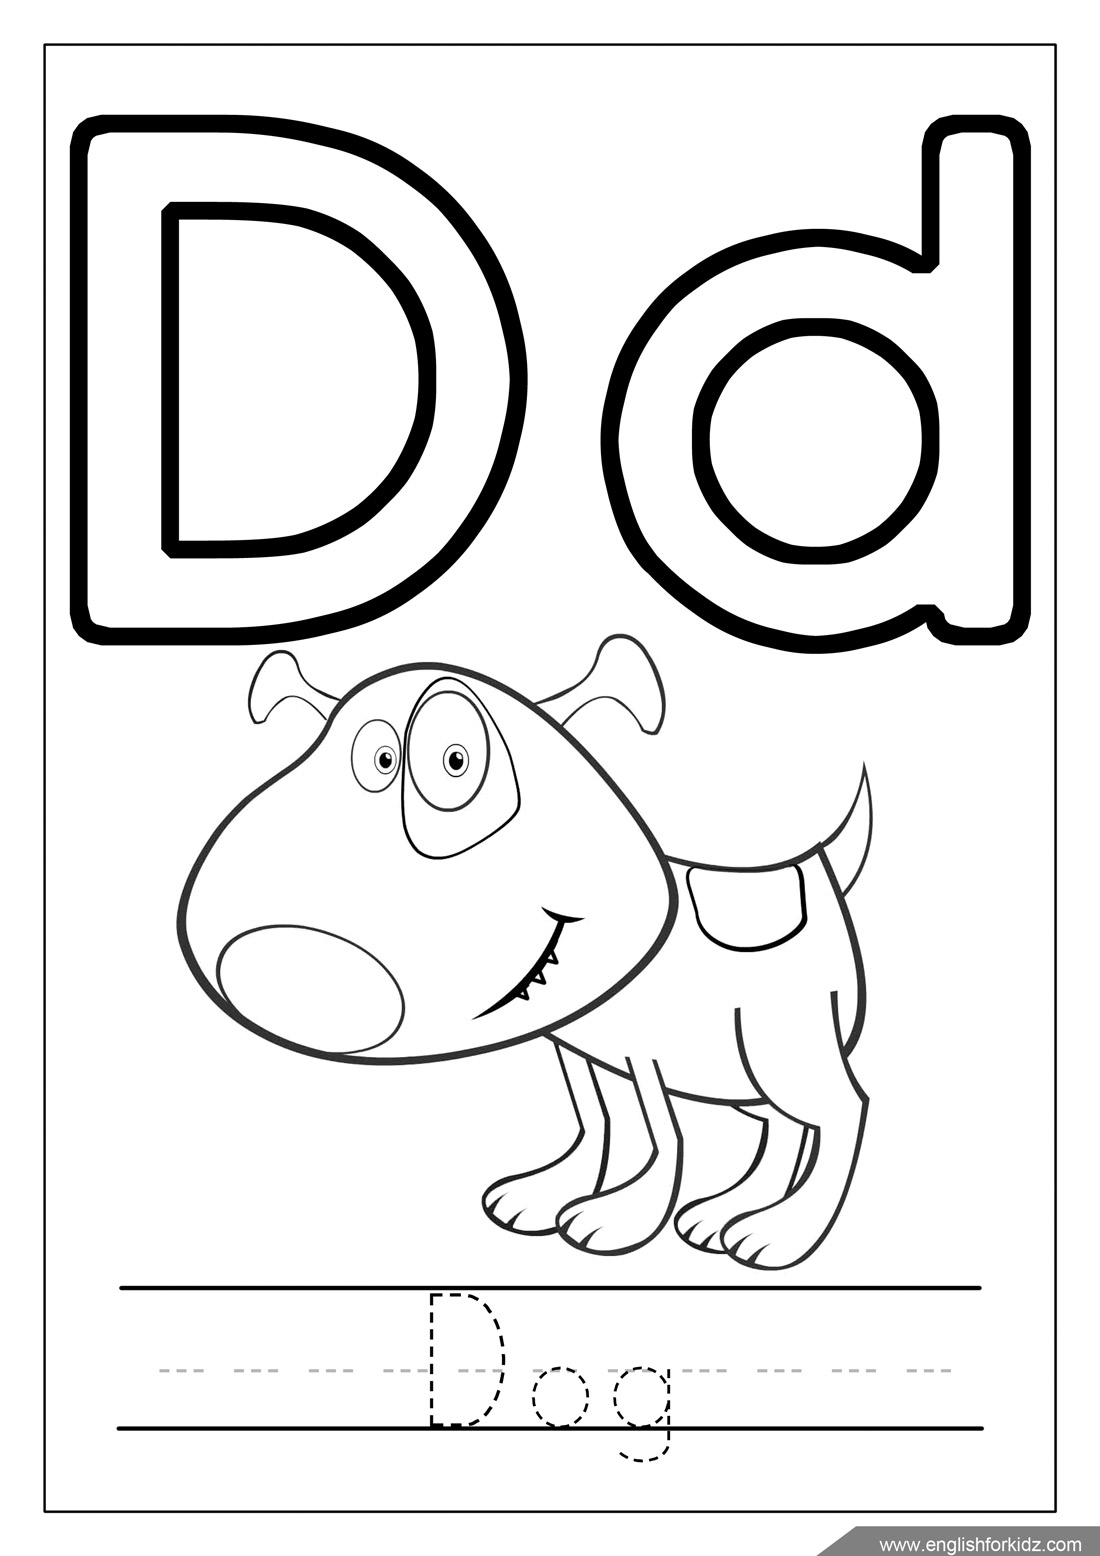 Alphabet Coloring Pages D : Printable alphabet coloring pages letters a j